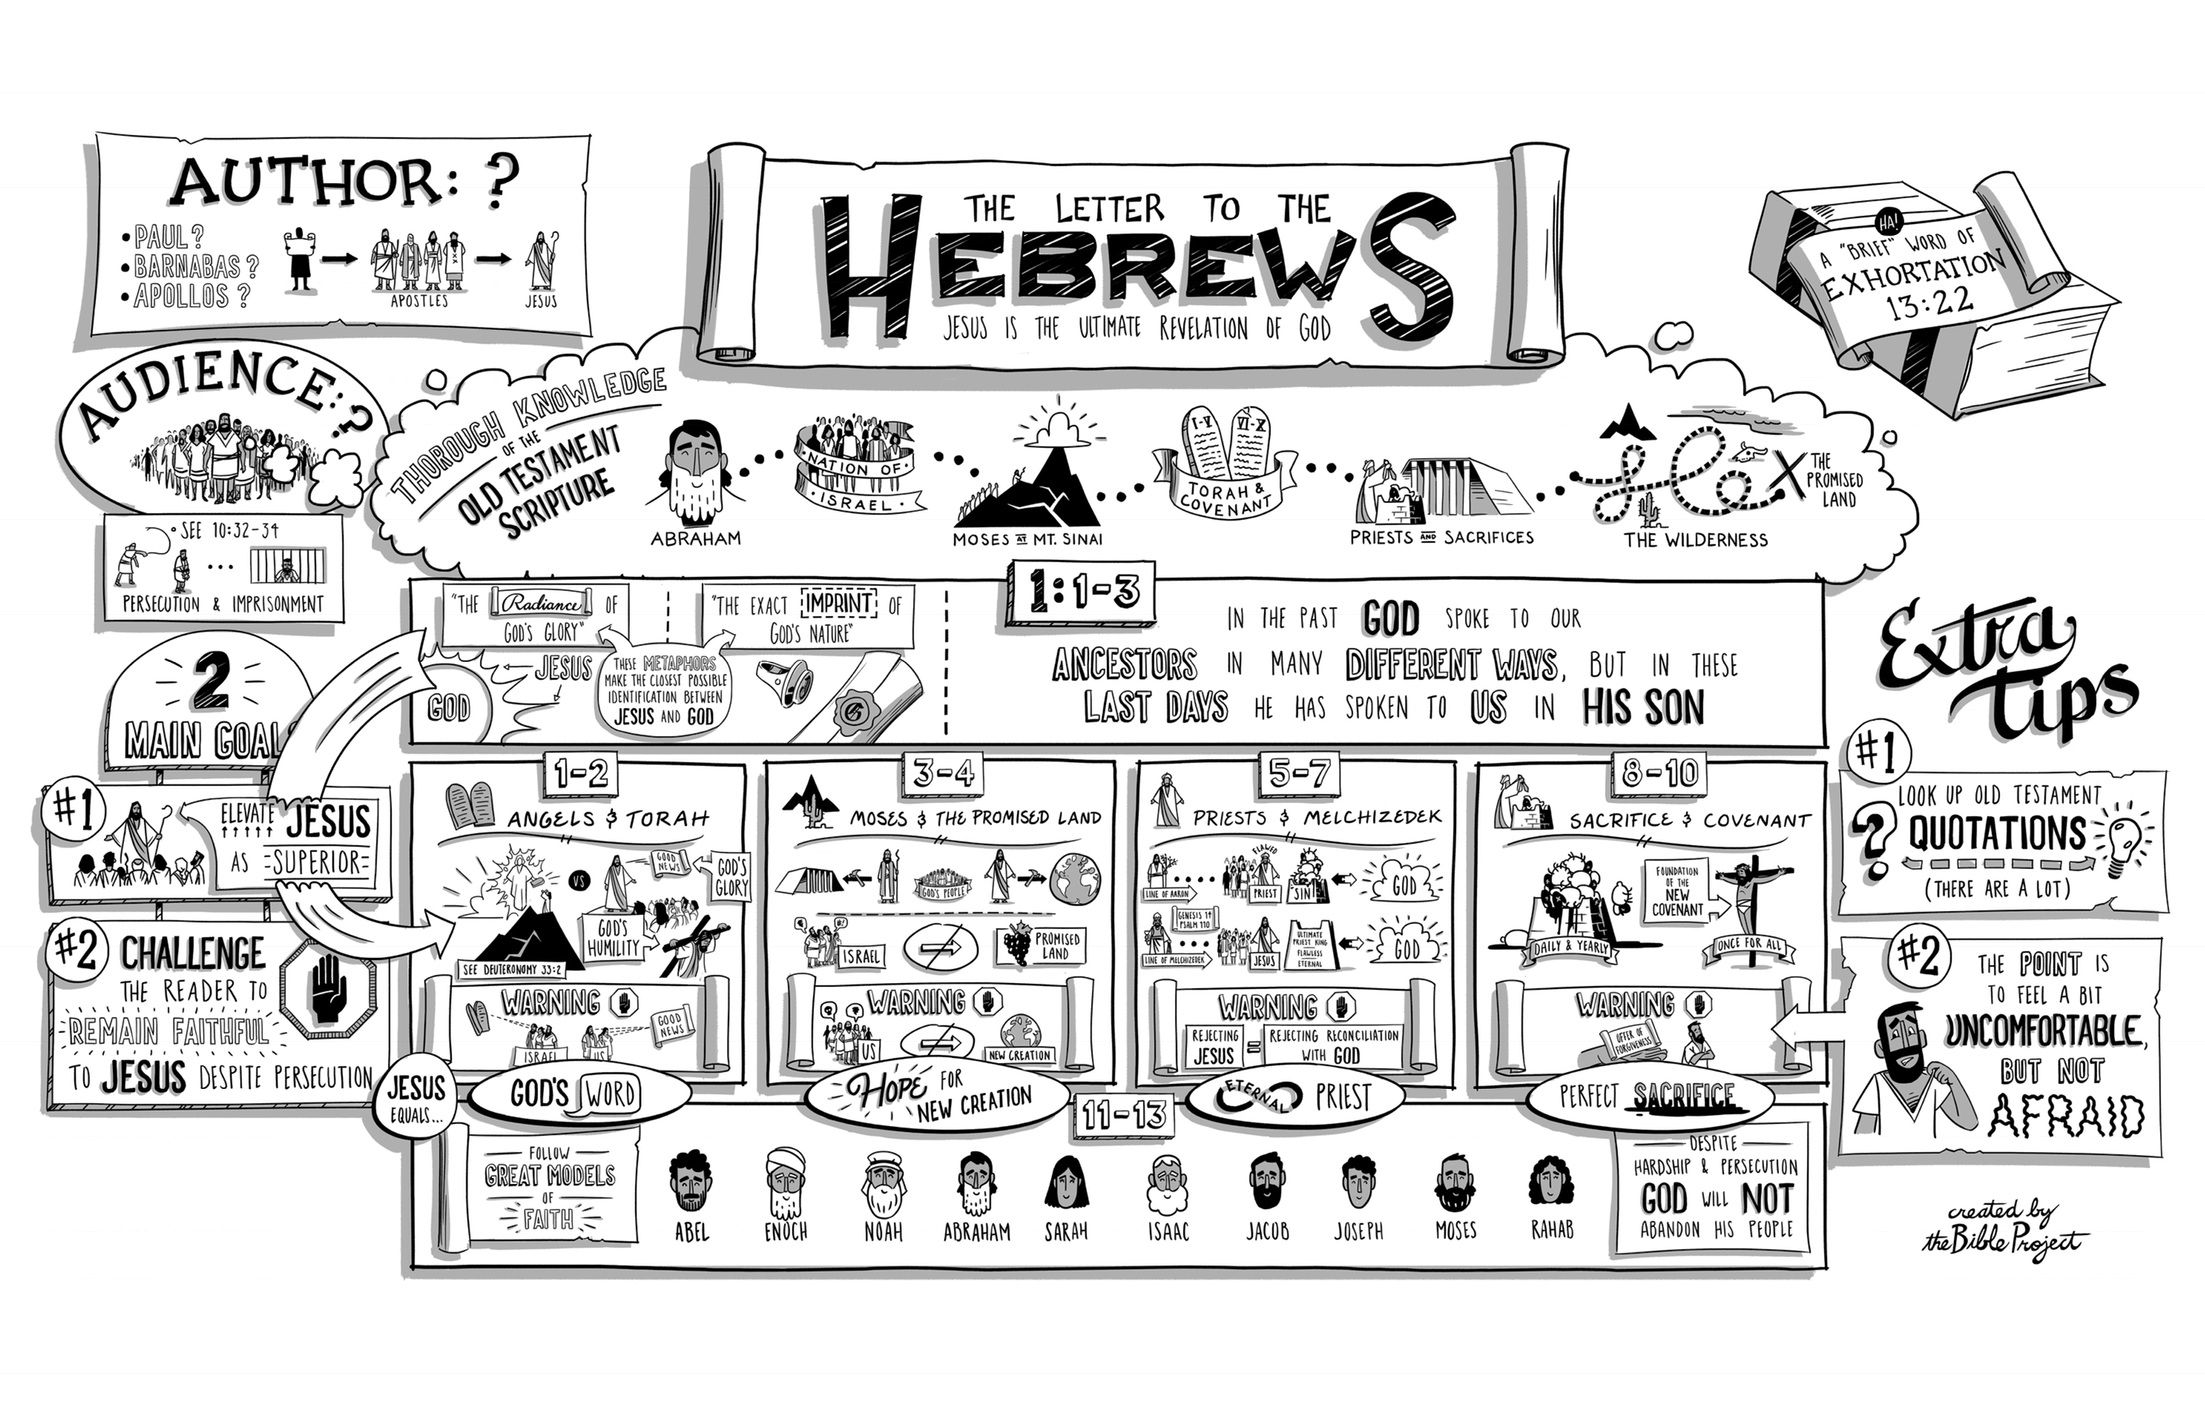 Dating advice for women books on hebrews